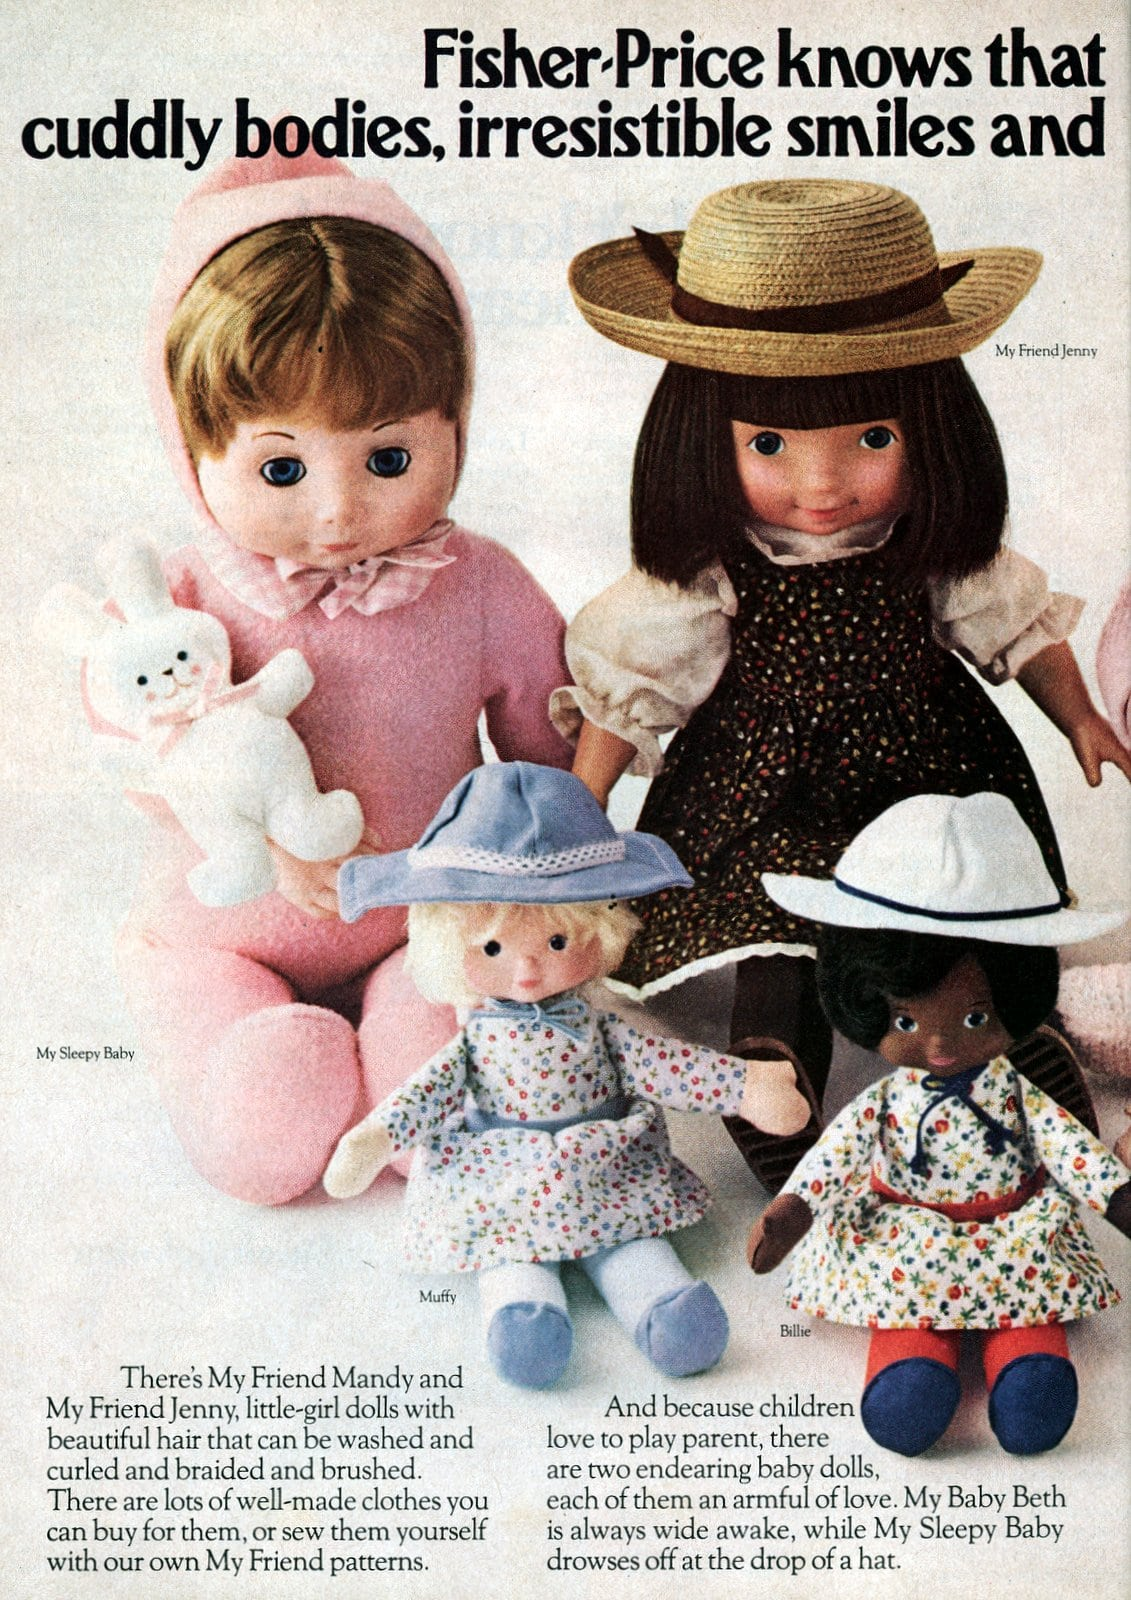 Cute vintage Fisher-Price dolls from 1979 (2)